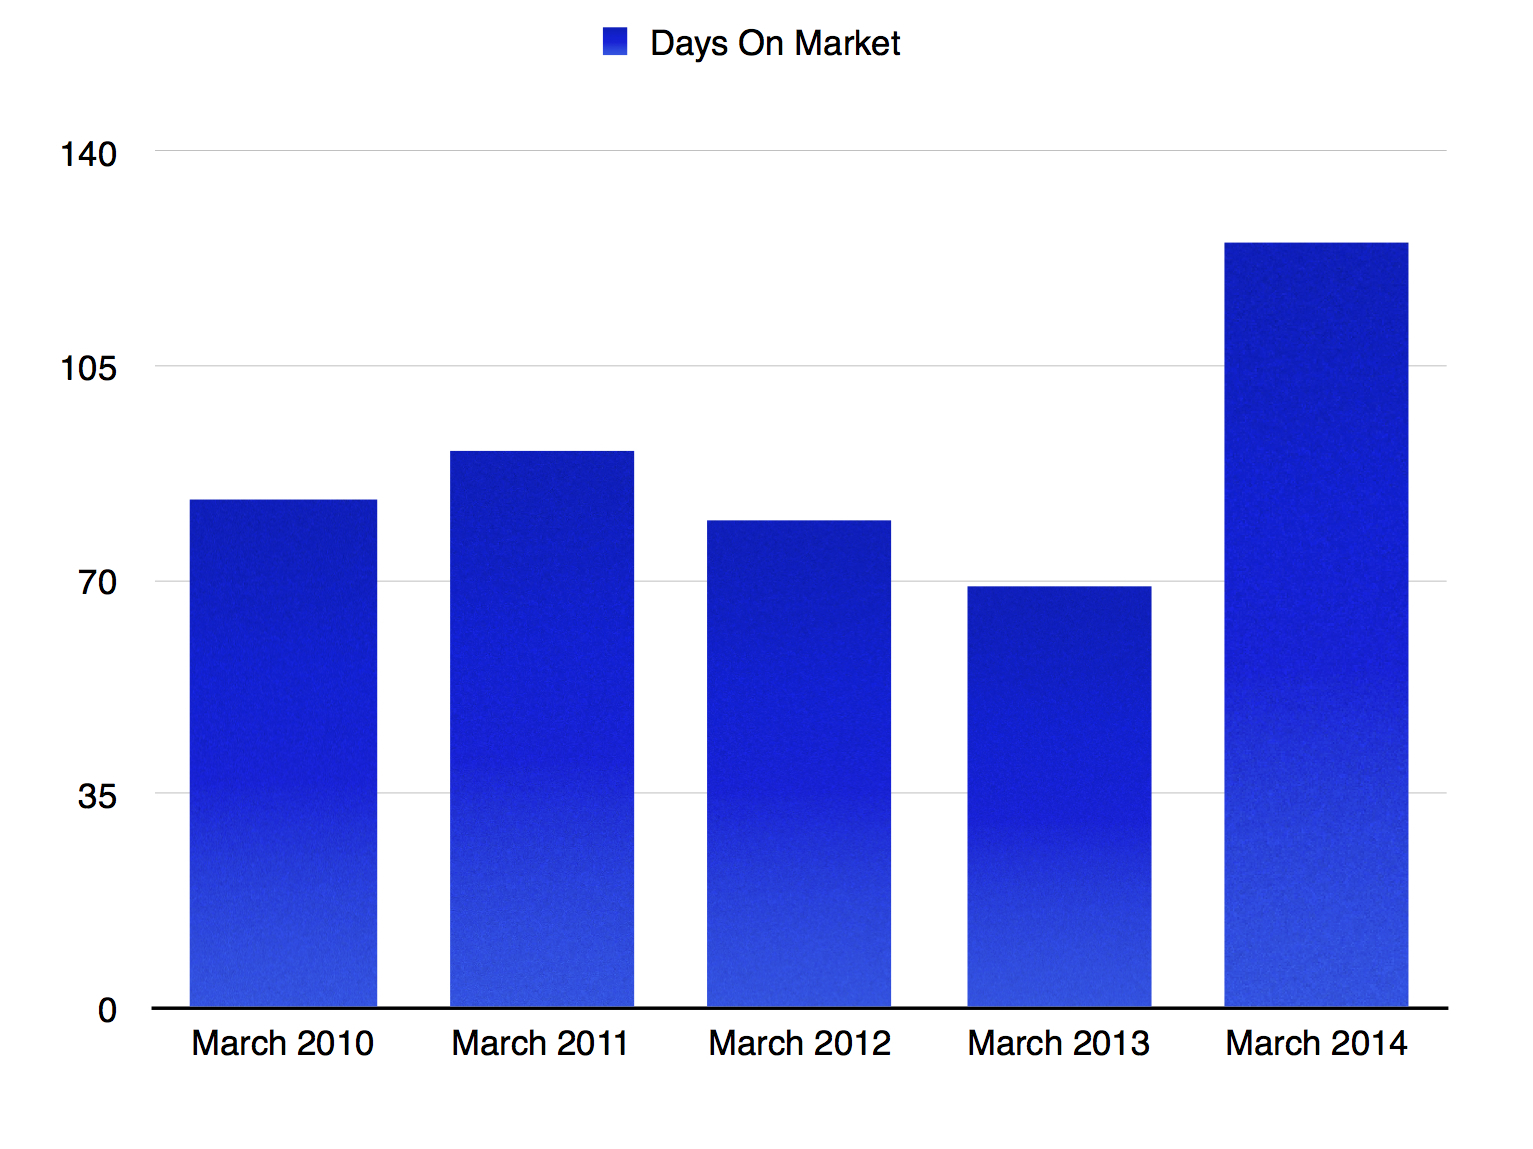 March Days On Market 2010-2014